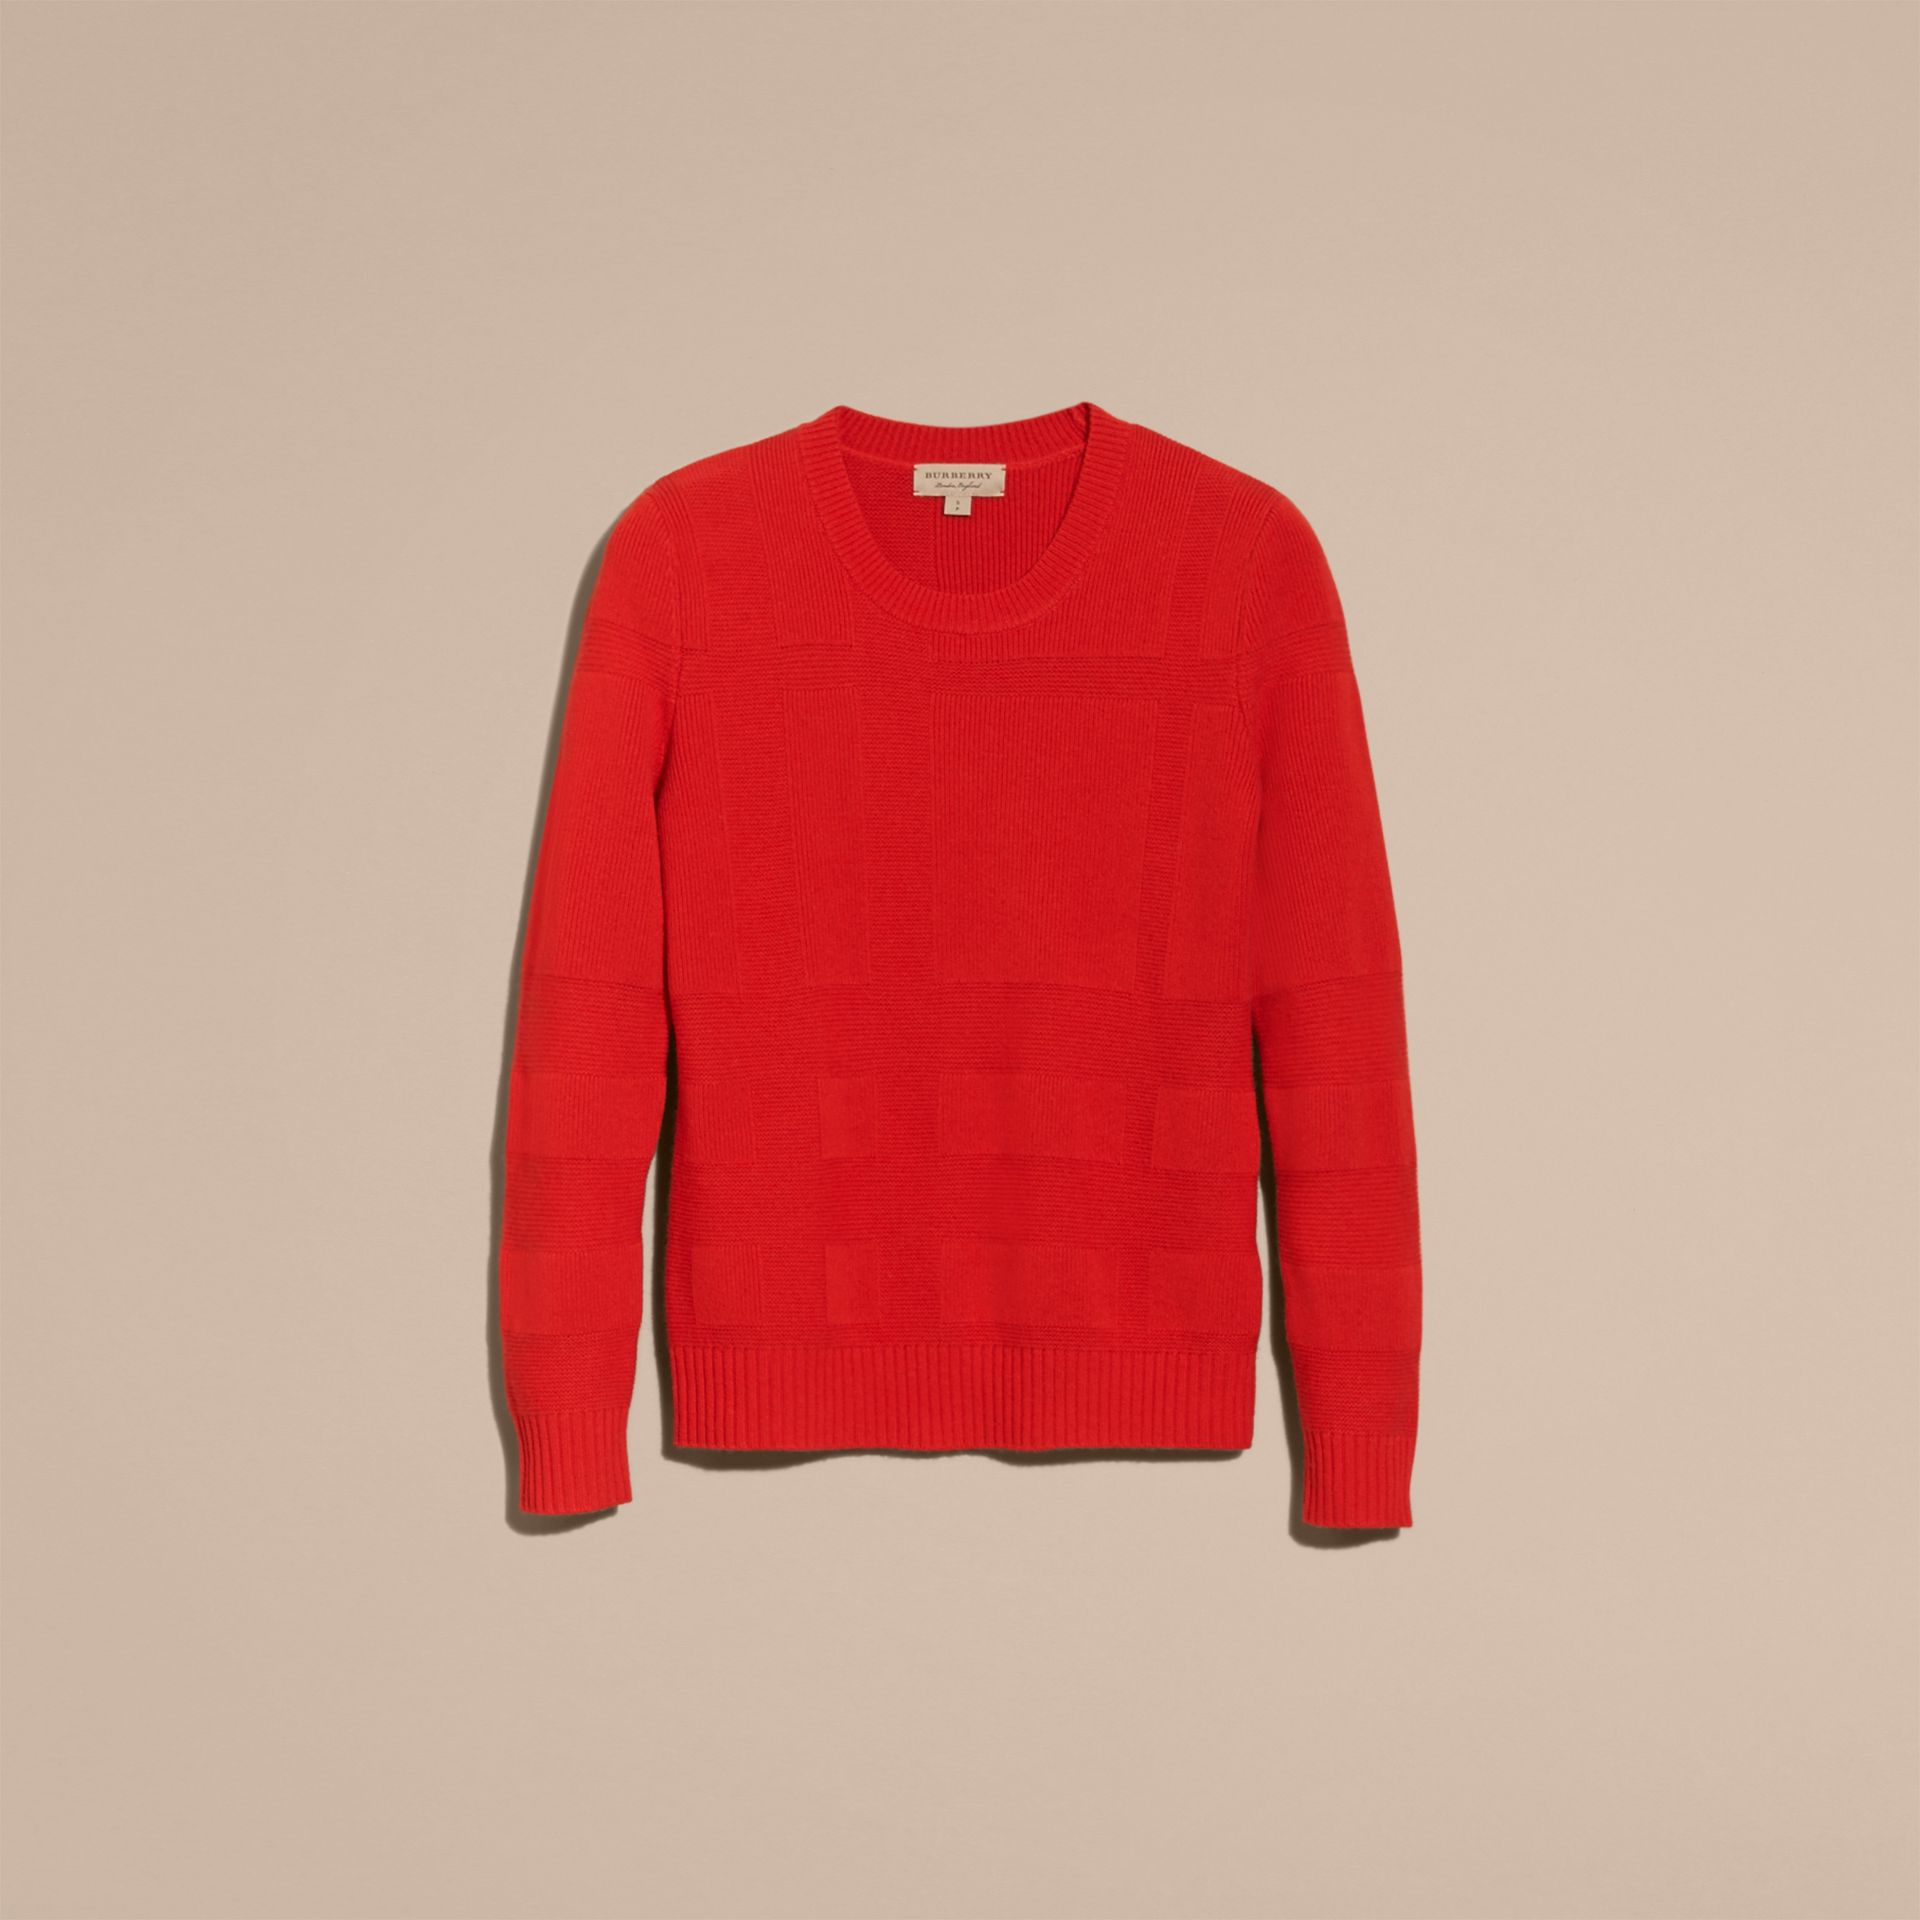 Bright military red Check-knit Wool Cashmere Sweater Bright Military Red - gallery image 4